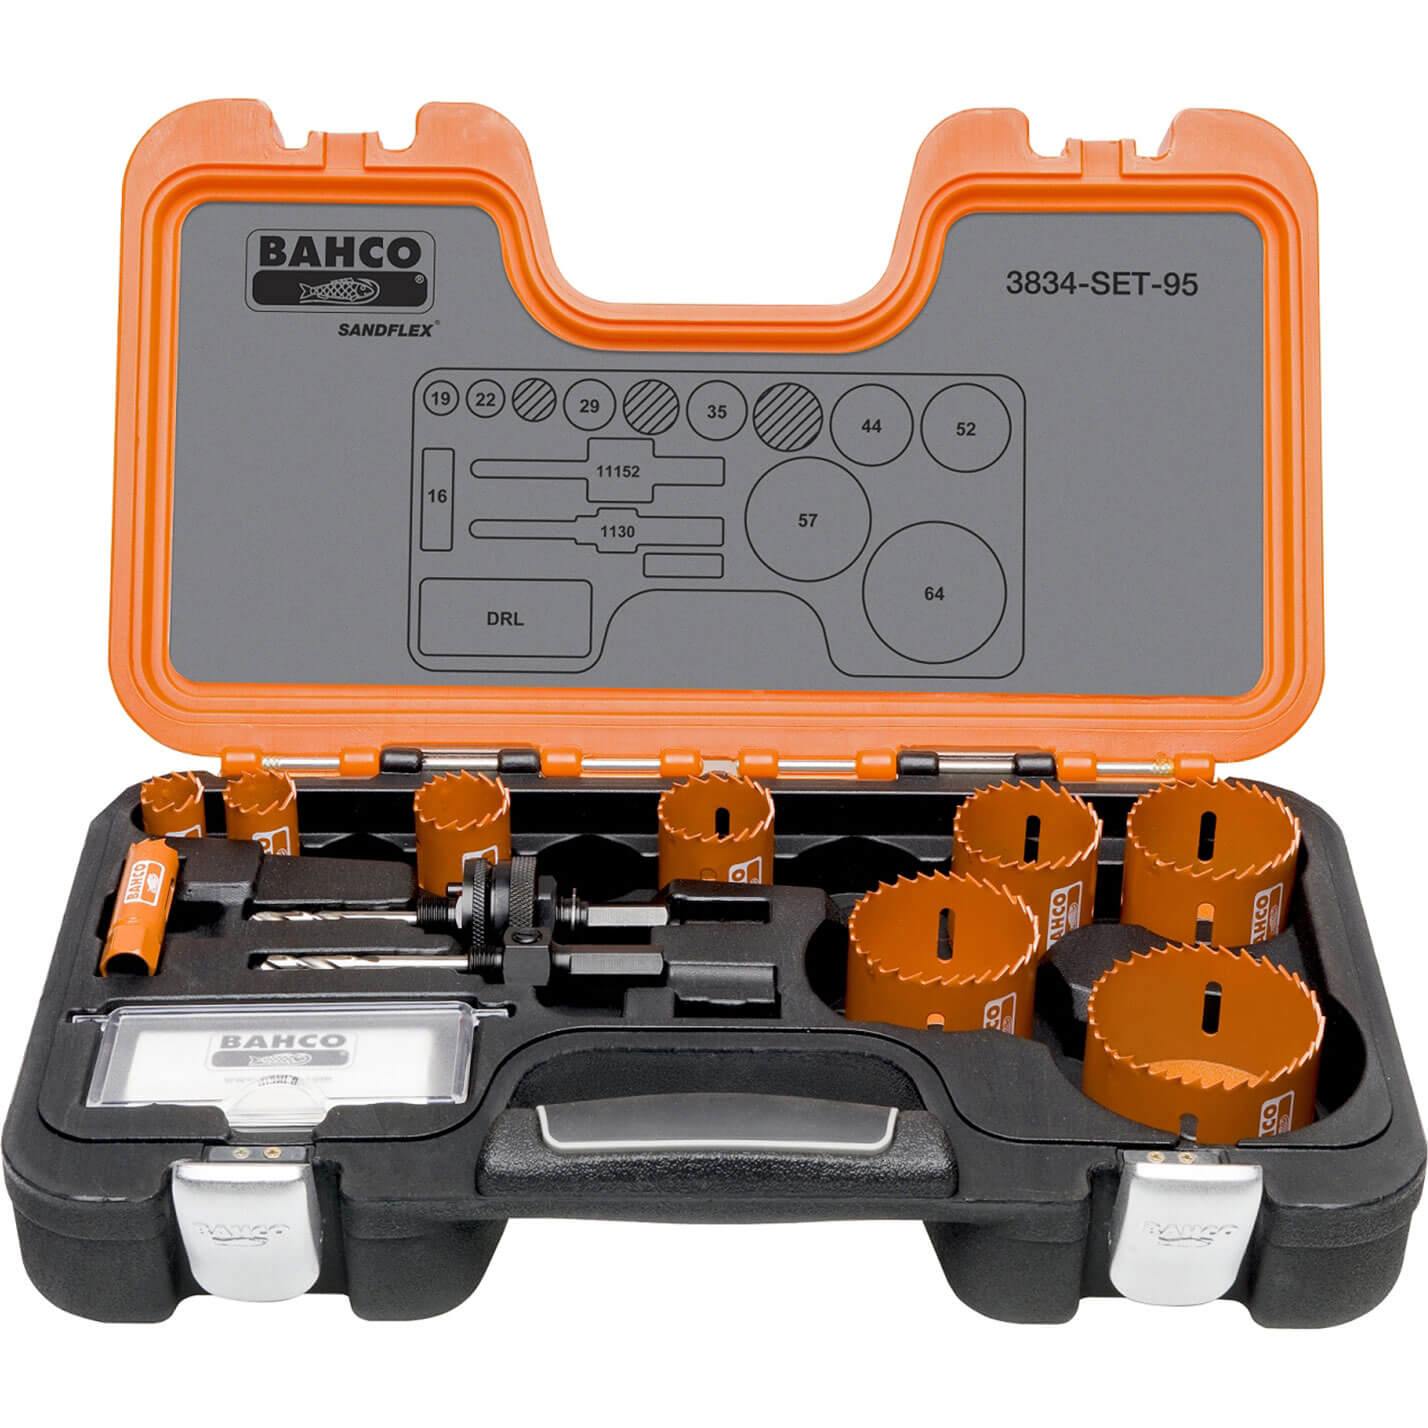 Bahco 14 Piece Professional Hole Saw Set 16-64mm